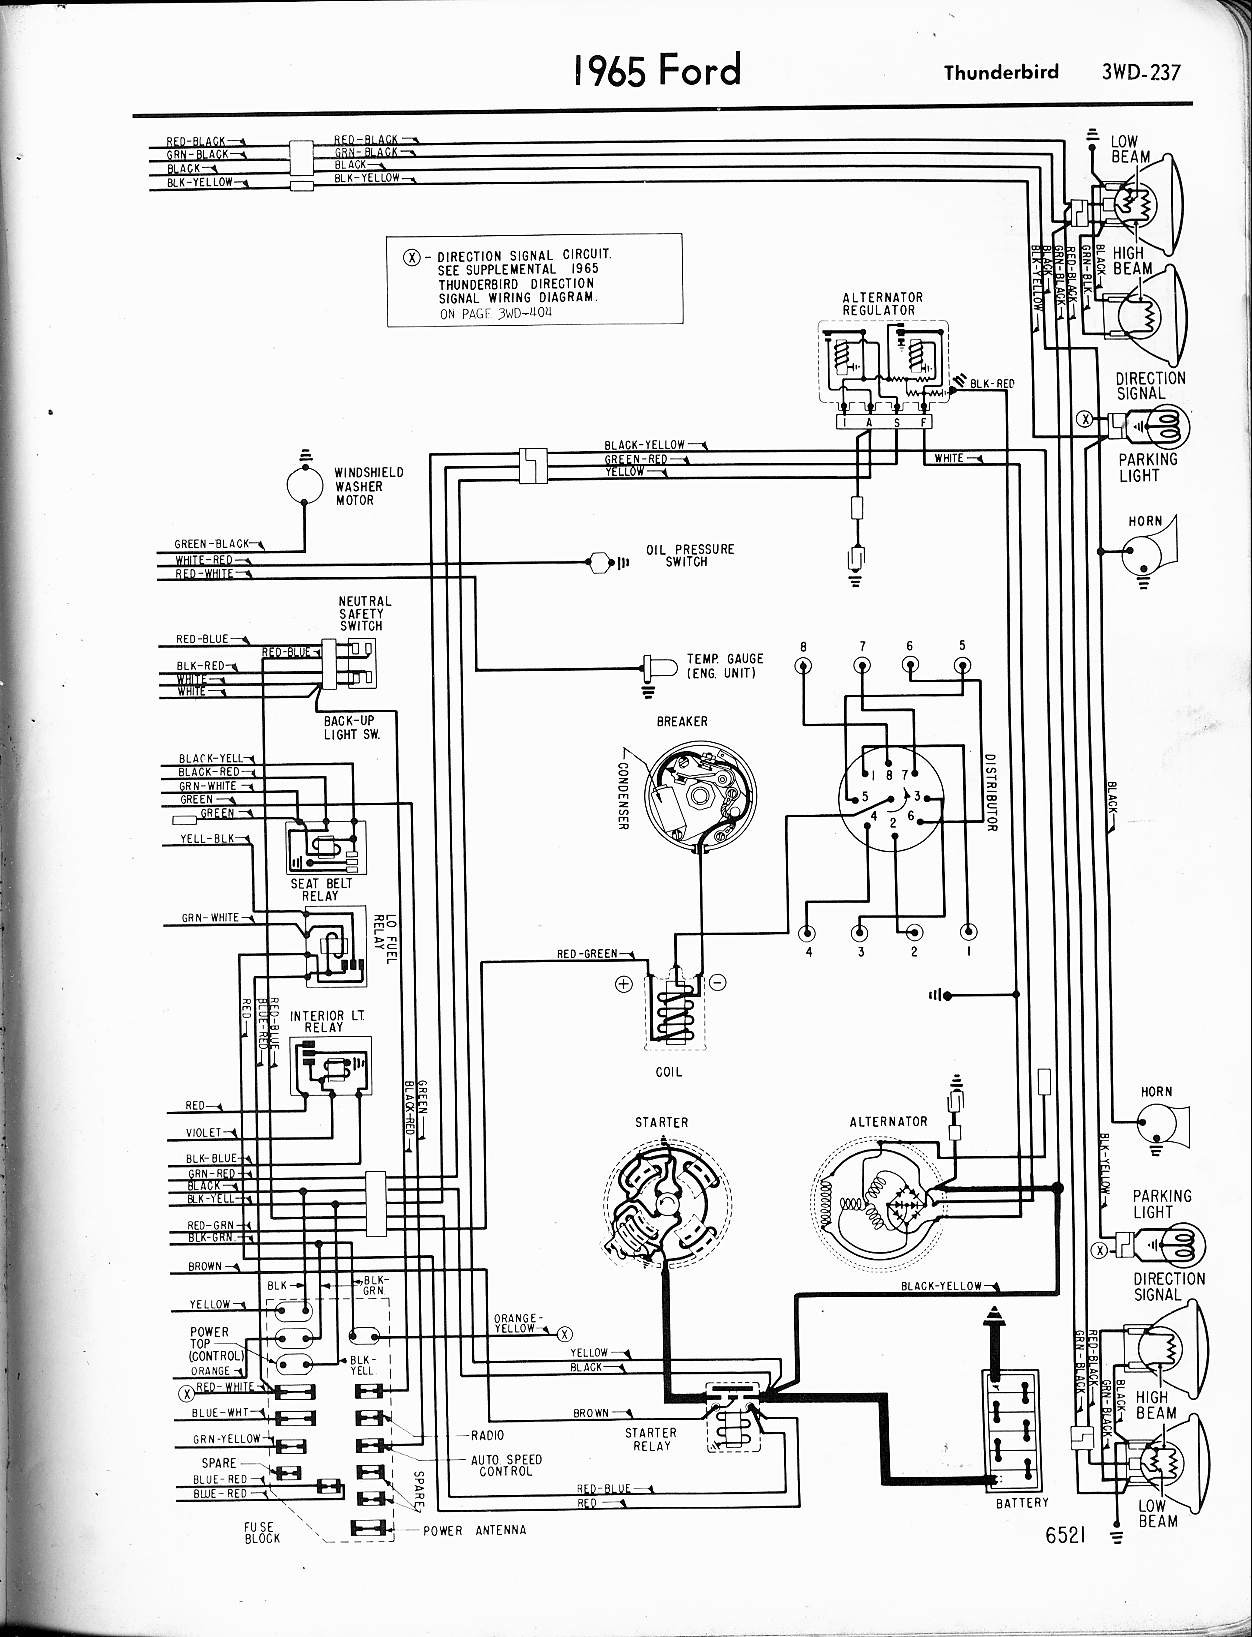 1957 Oldsmobile Engine Wiring Diagram Wire Data Schema Diagrams Ford Coil Electrical Rh Cytrus Co 2000 Silhouette